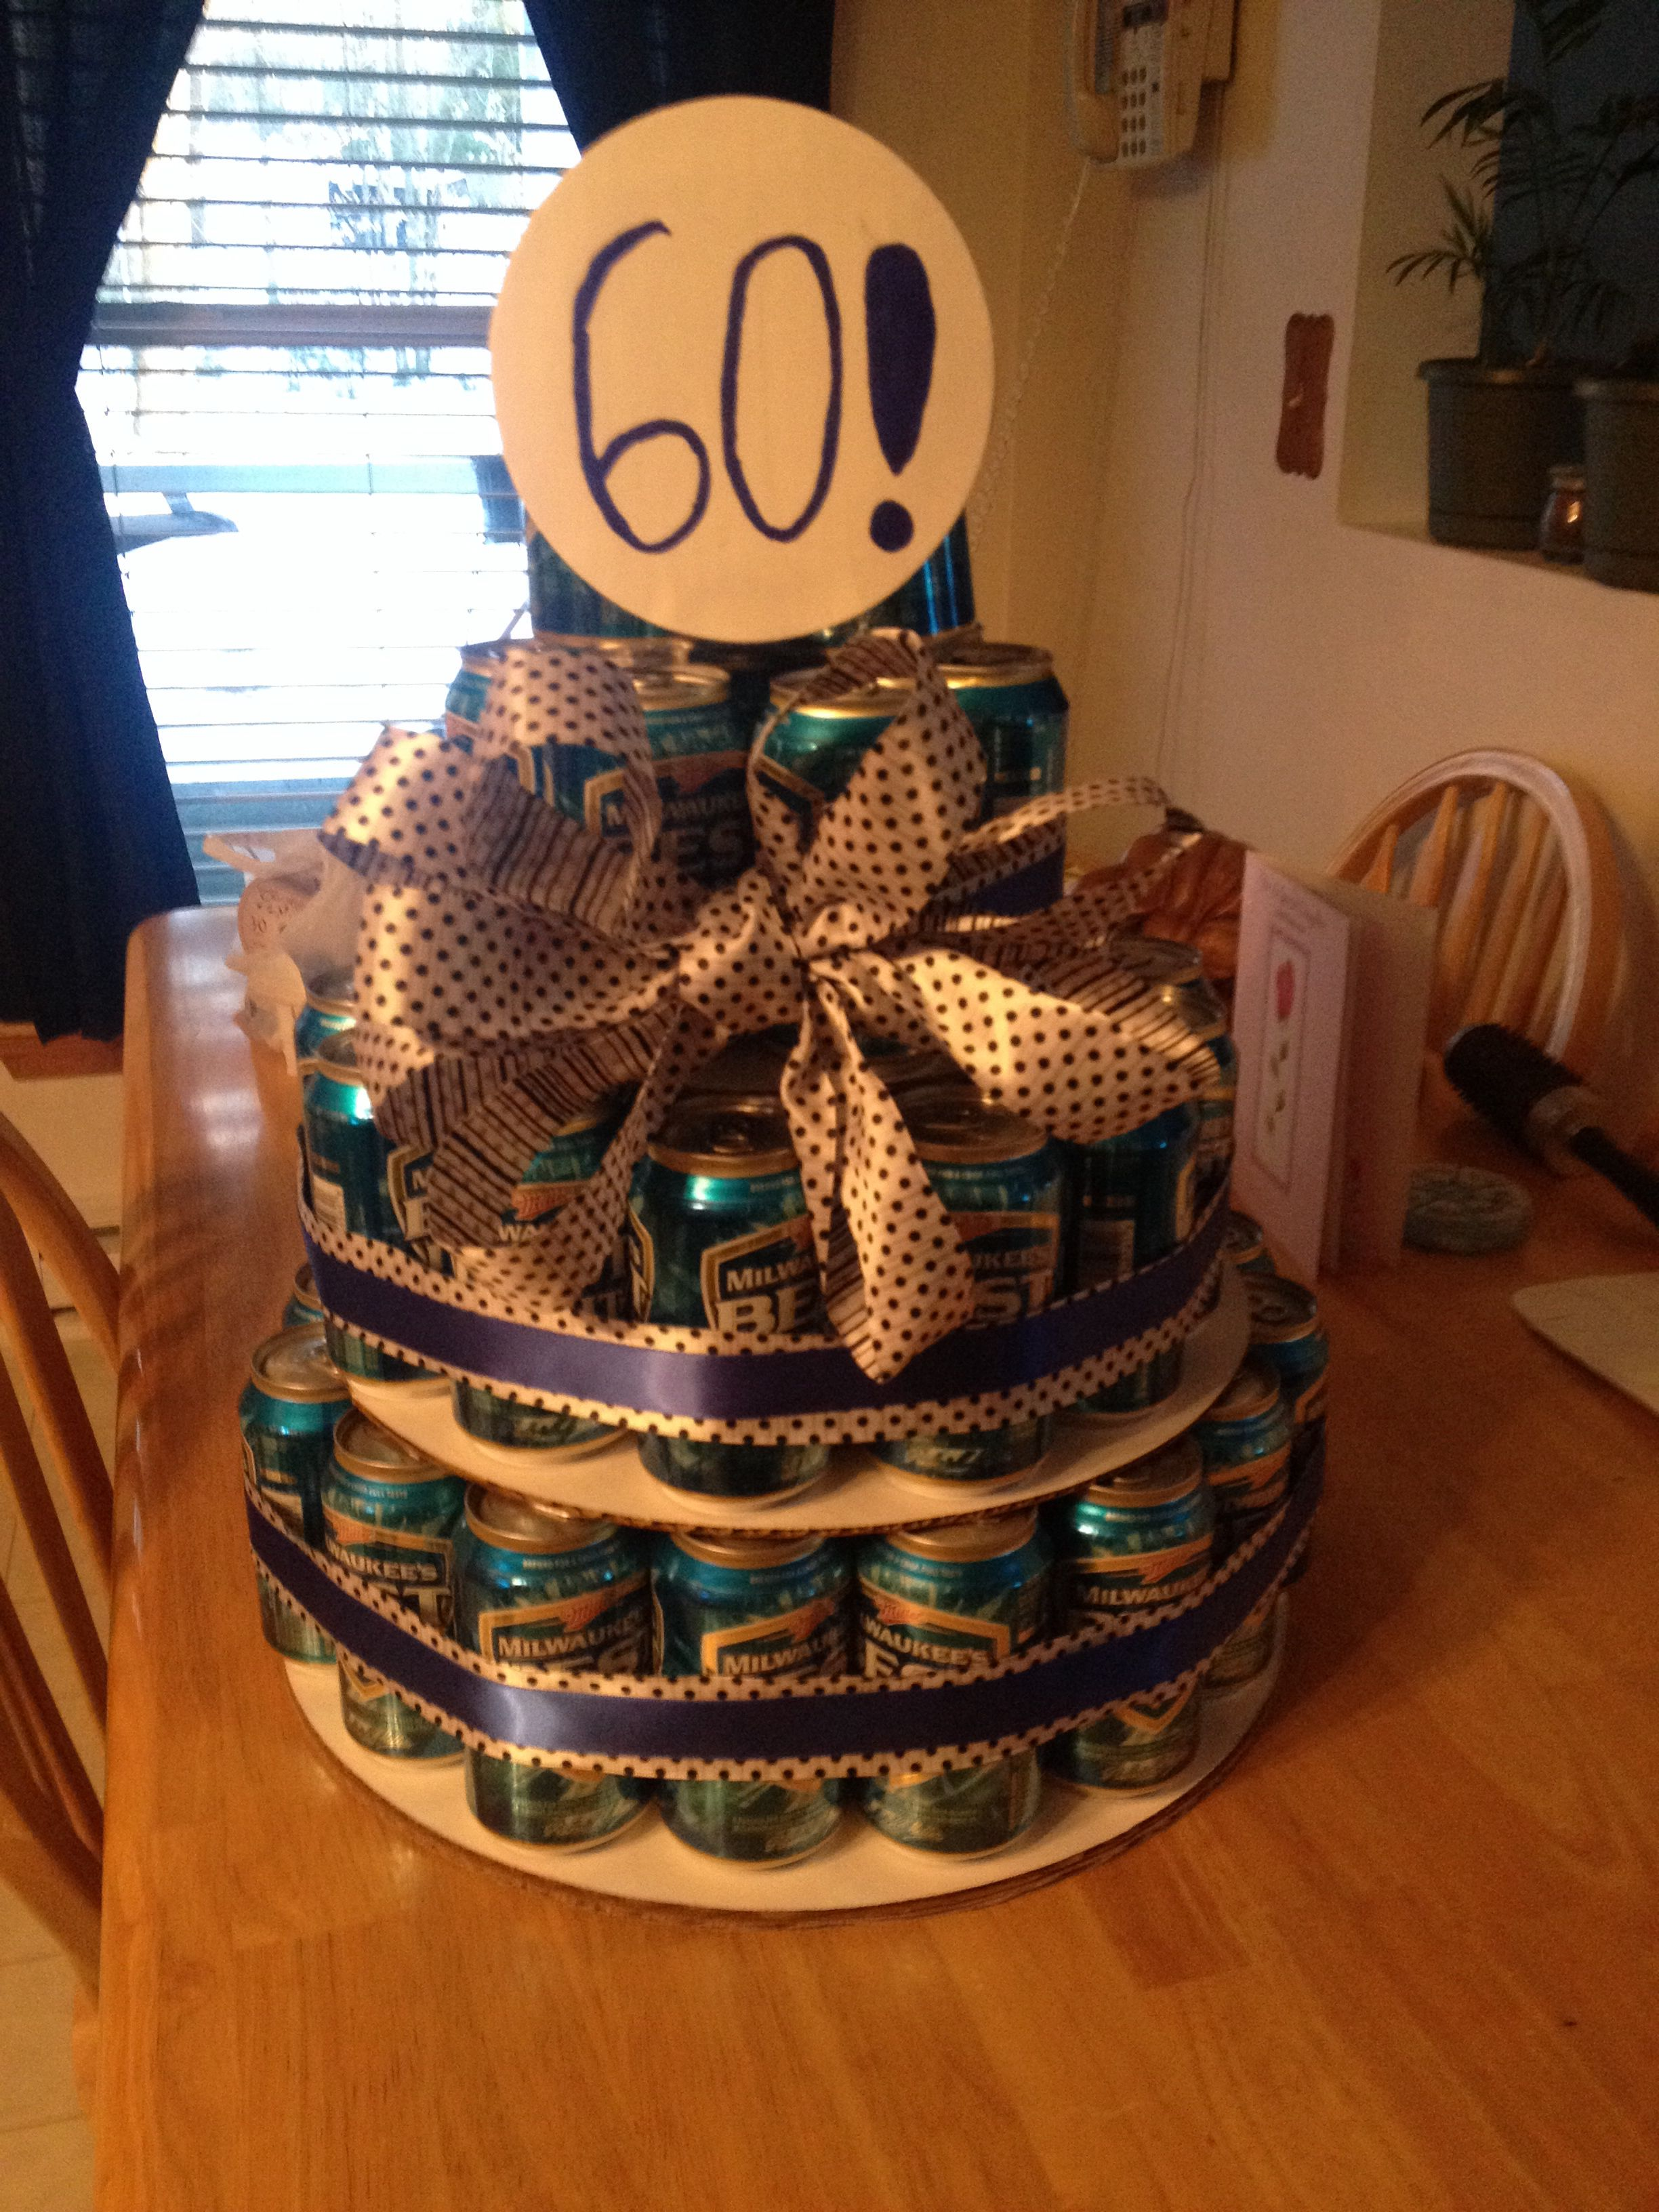 60 Beer Can Cake For A 60th Birthday Things Ive Made Pinterest